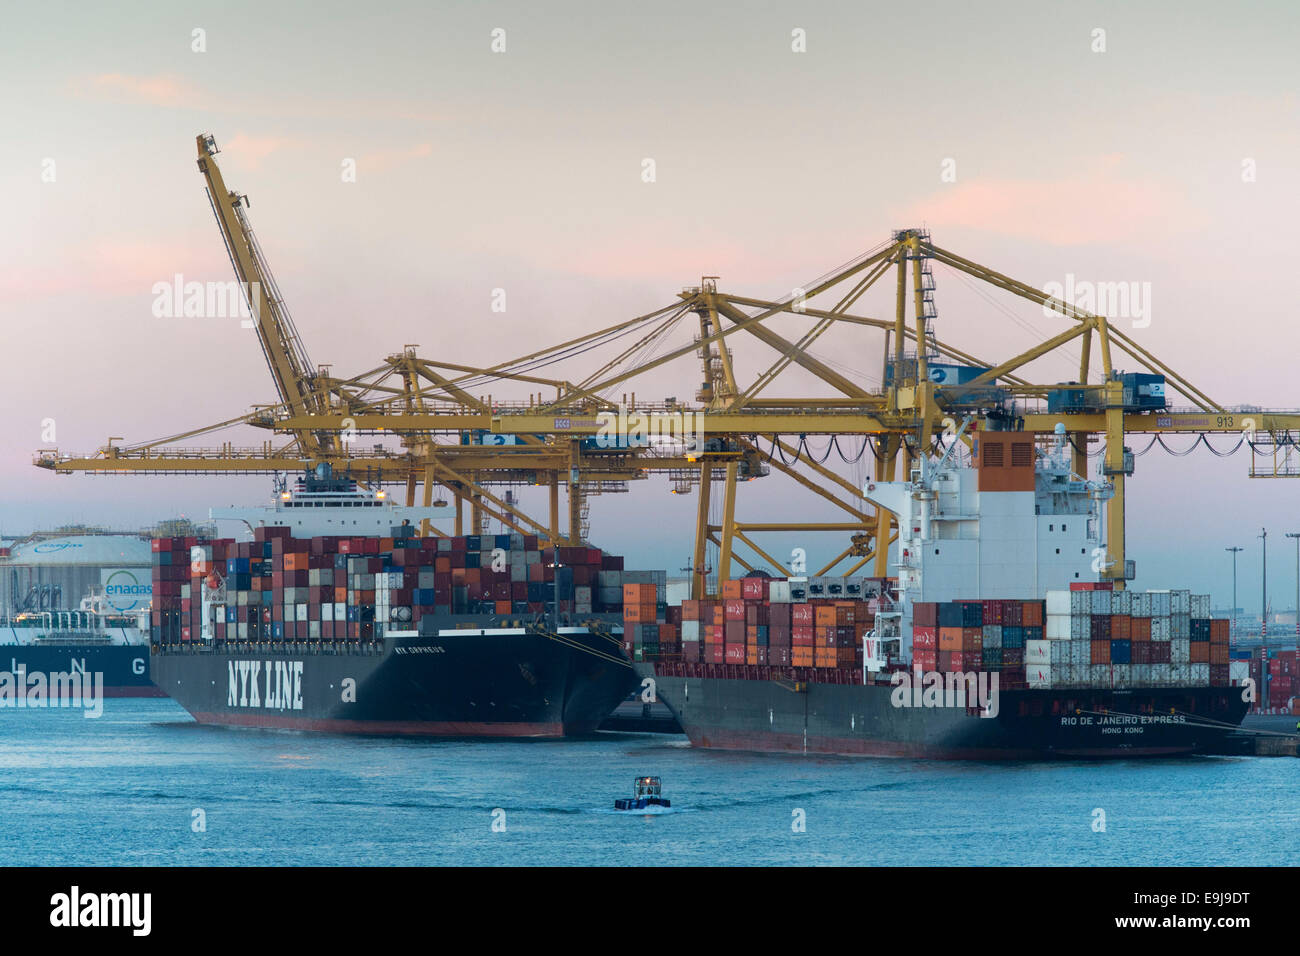 Cargo ships carrying shipping containers at Barcelona port In Barcelona, Spain, at sunrise. - Stock Image